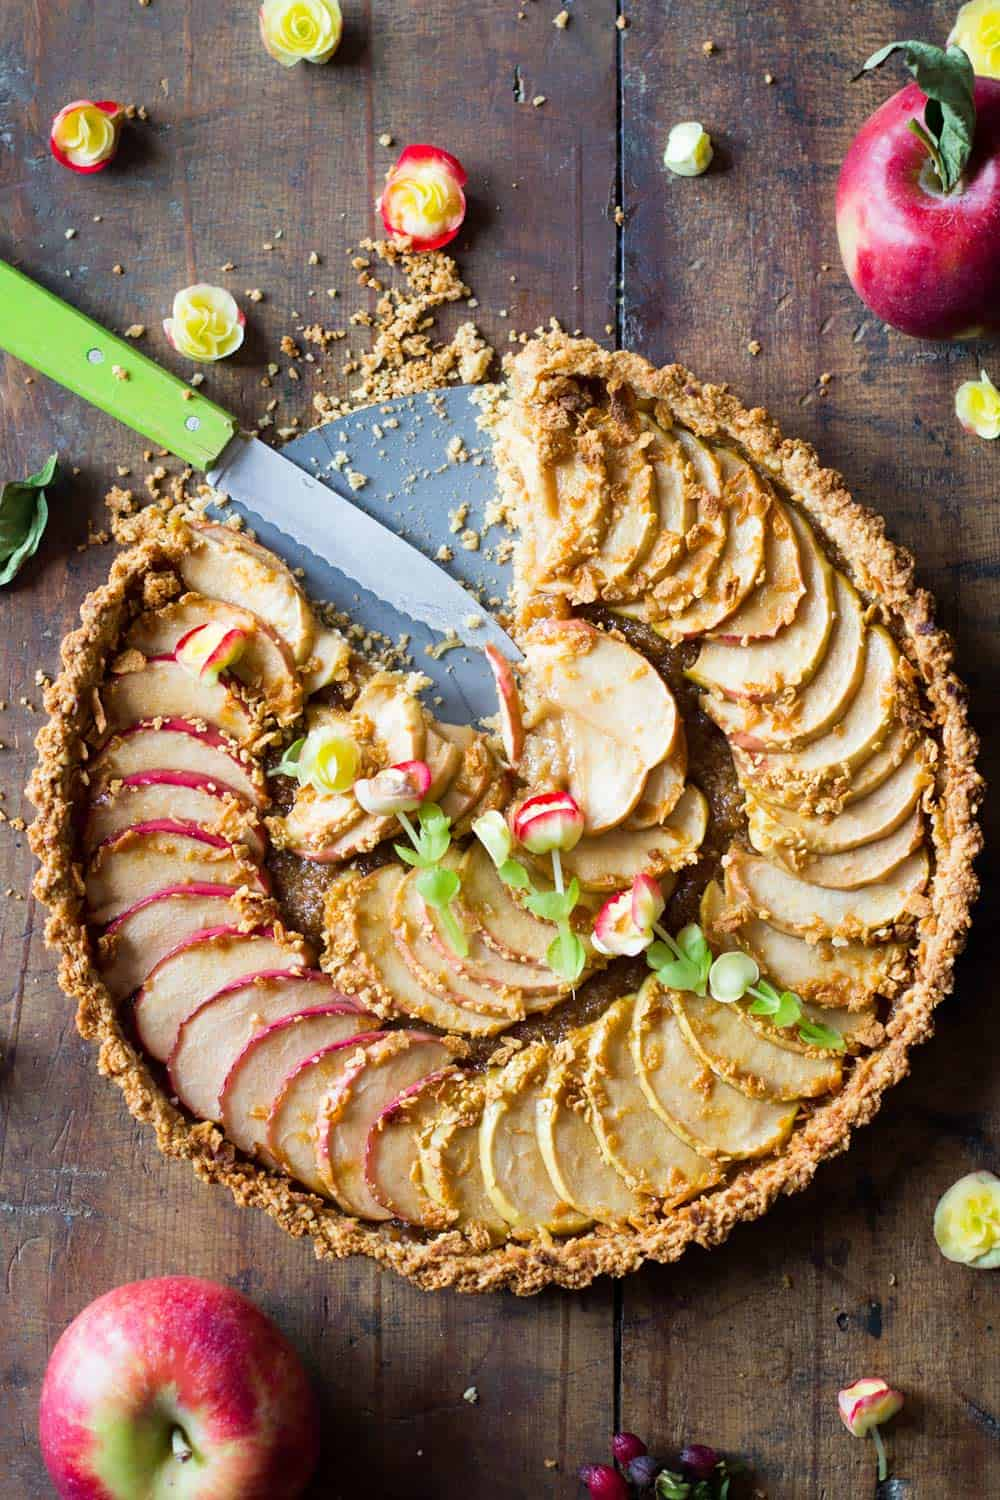 Top down view of baked apple tart missing a slice, and a cutting knife.